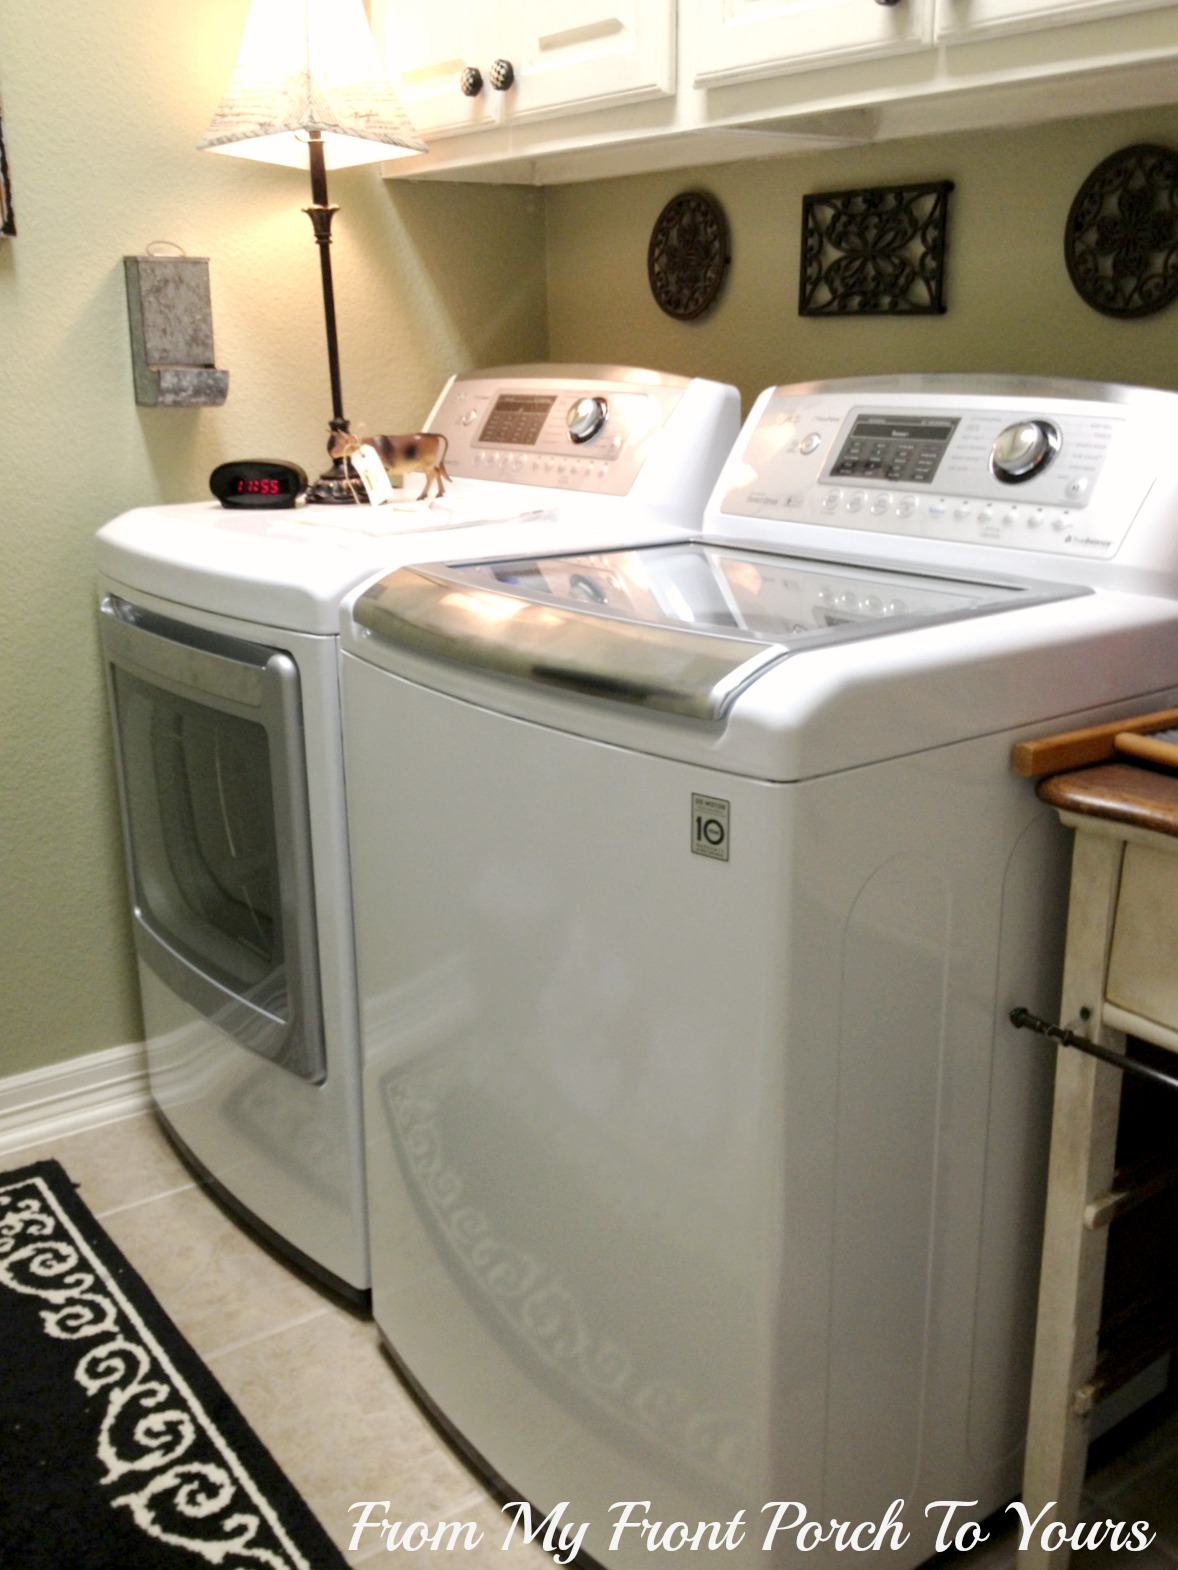 From My Front Porch To Yours Washer Amp Dryer Comparison